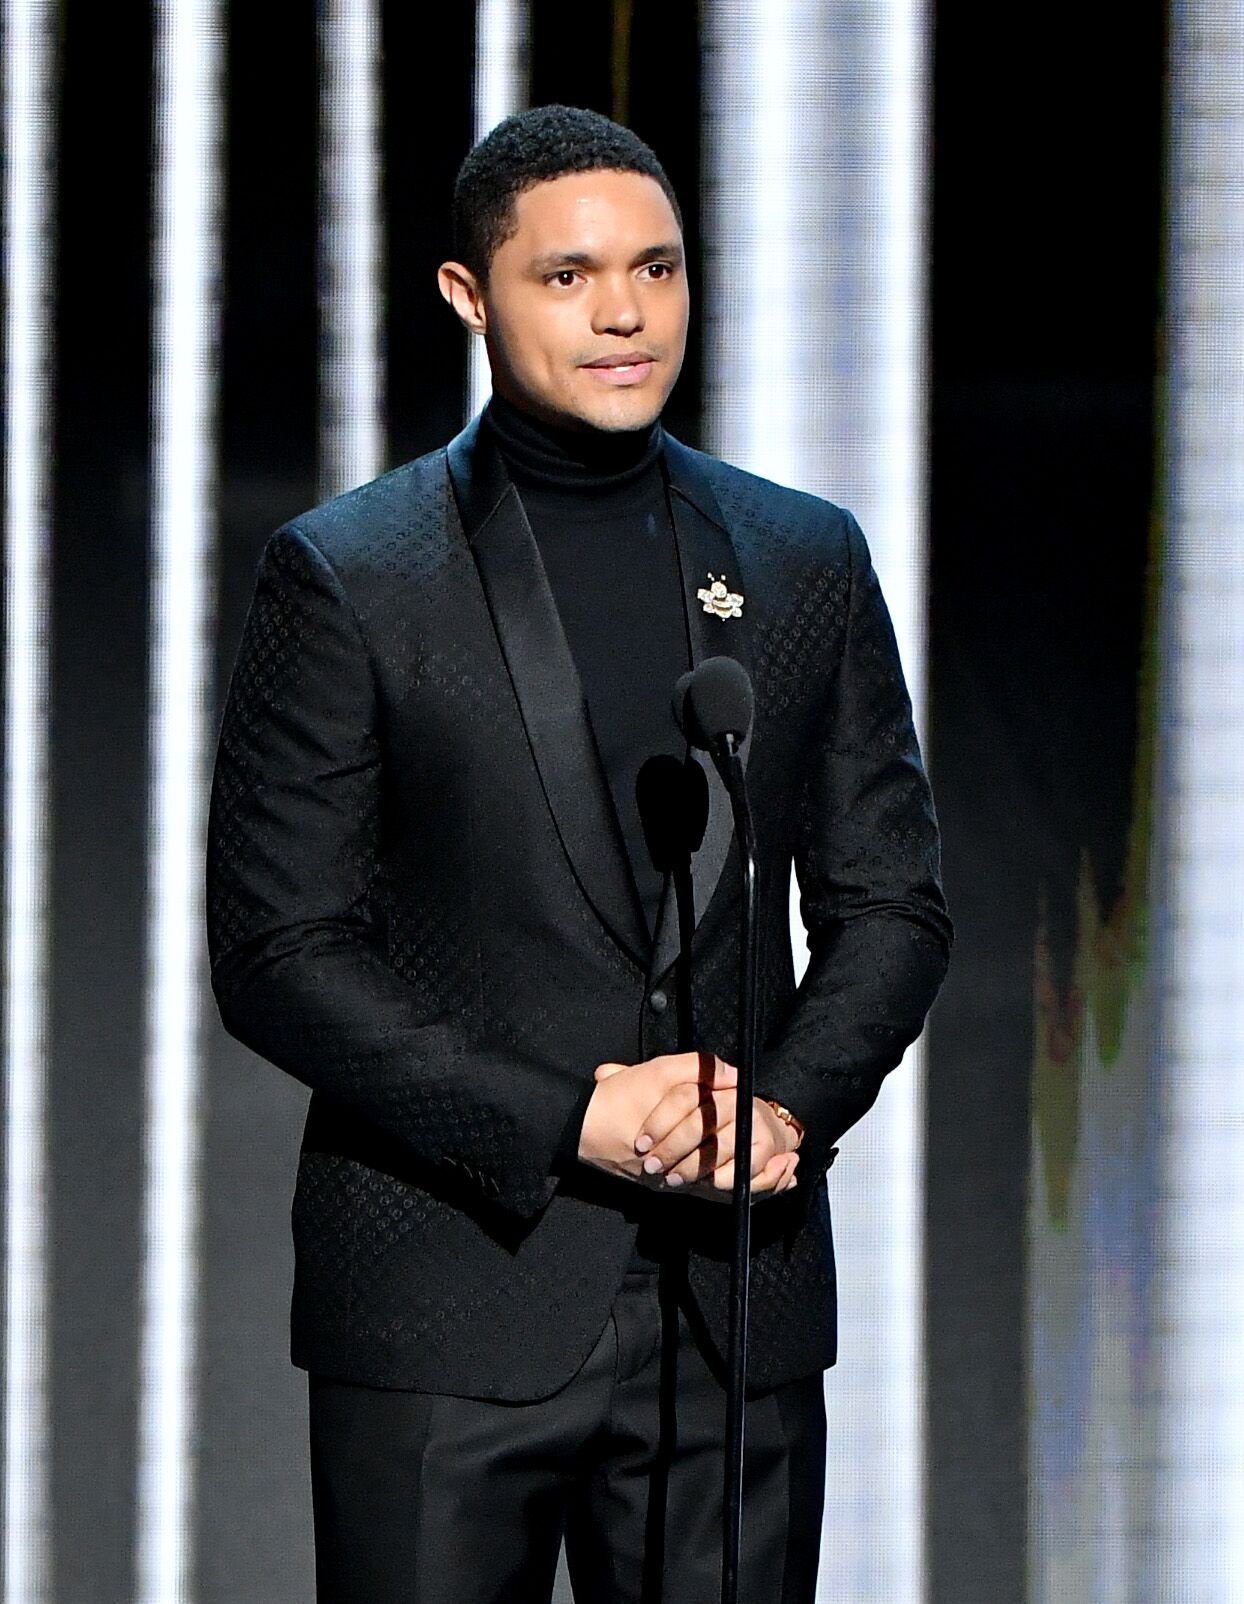 Trevor Noah speaks onstage at the 50th NAACP Image Awards at Dolby Theatre on March 30, 2019 in Hollywood, California. | Source: Getty Images